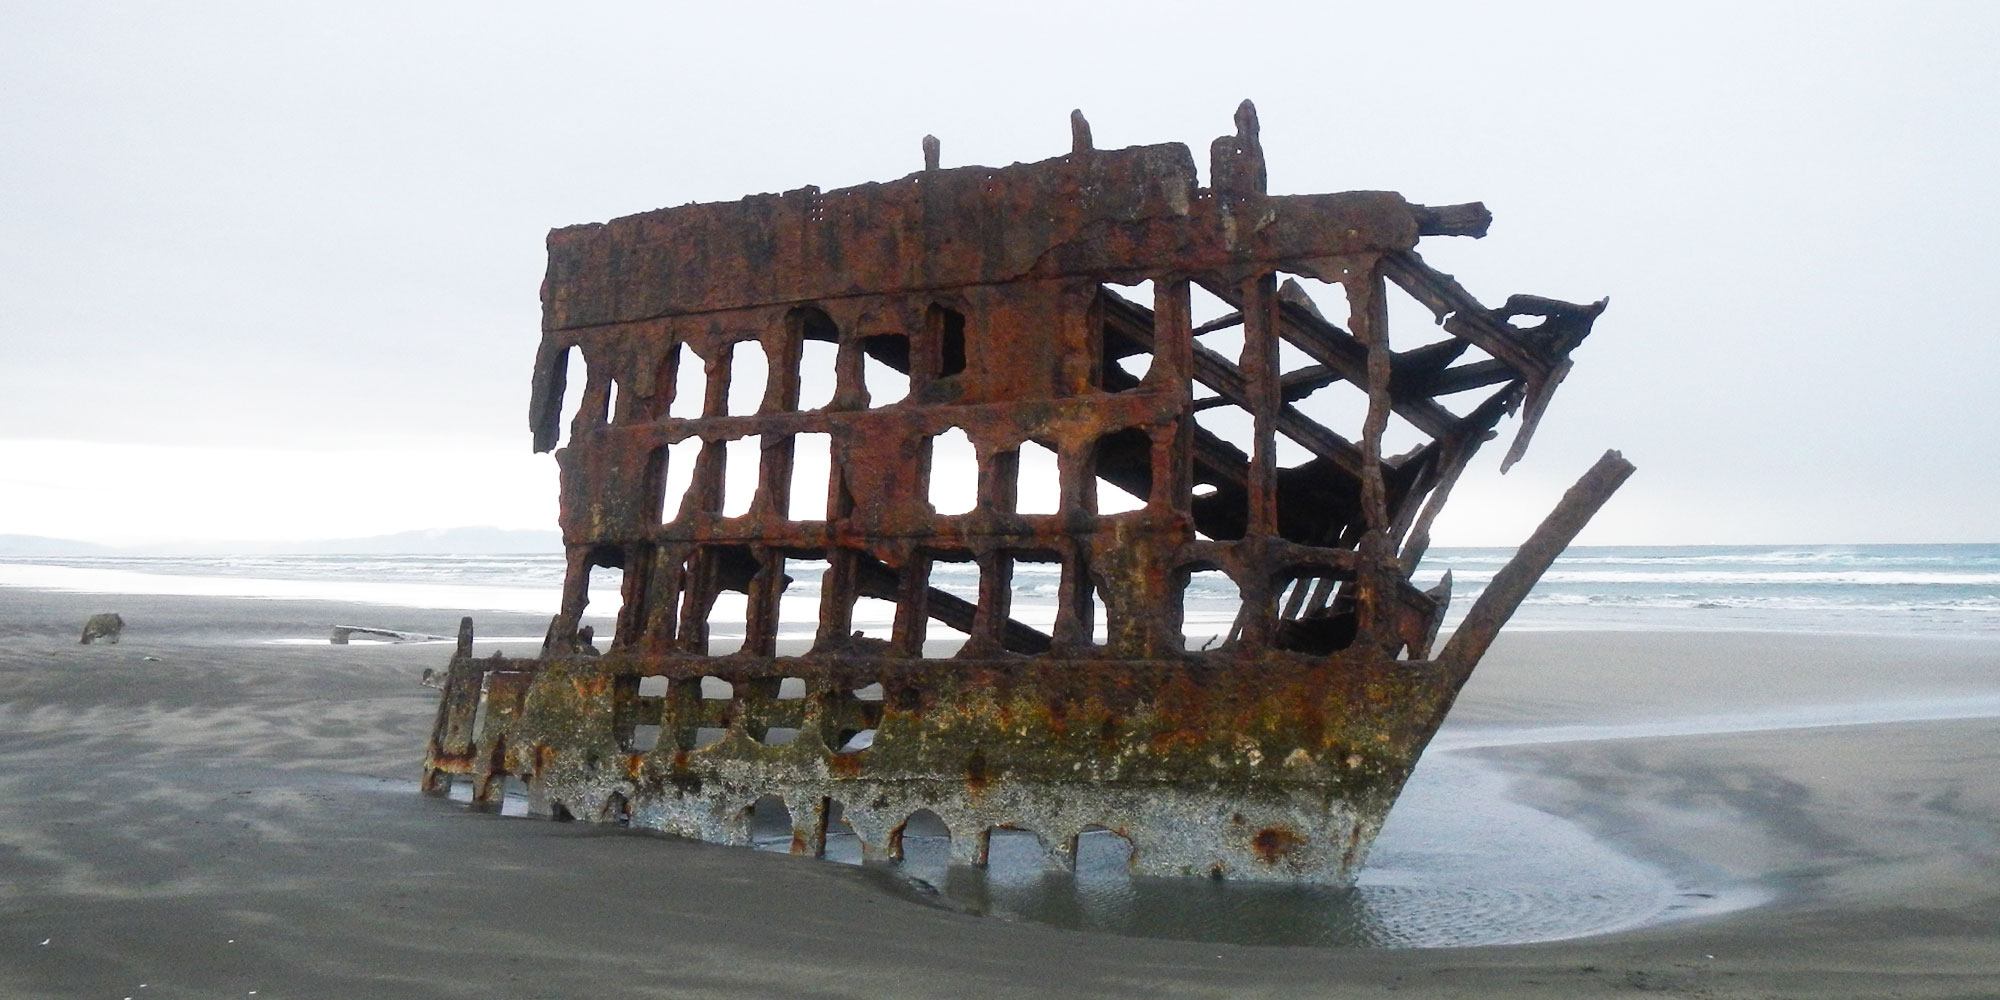 Shipwreck of Peter Iredale